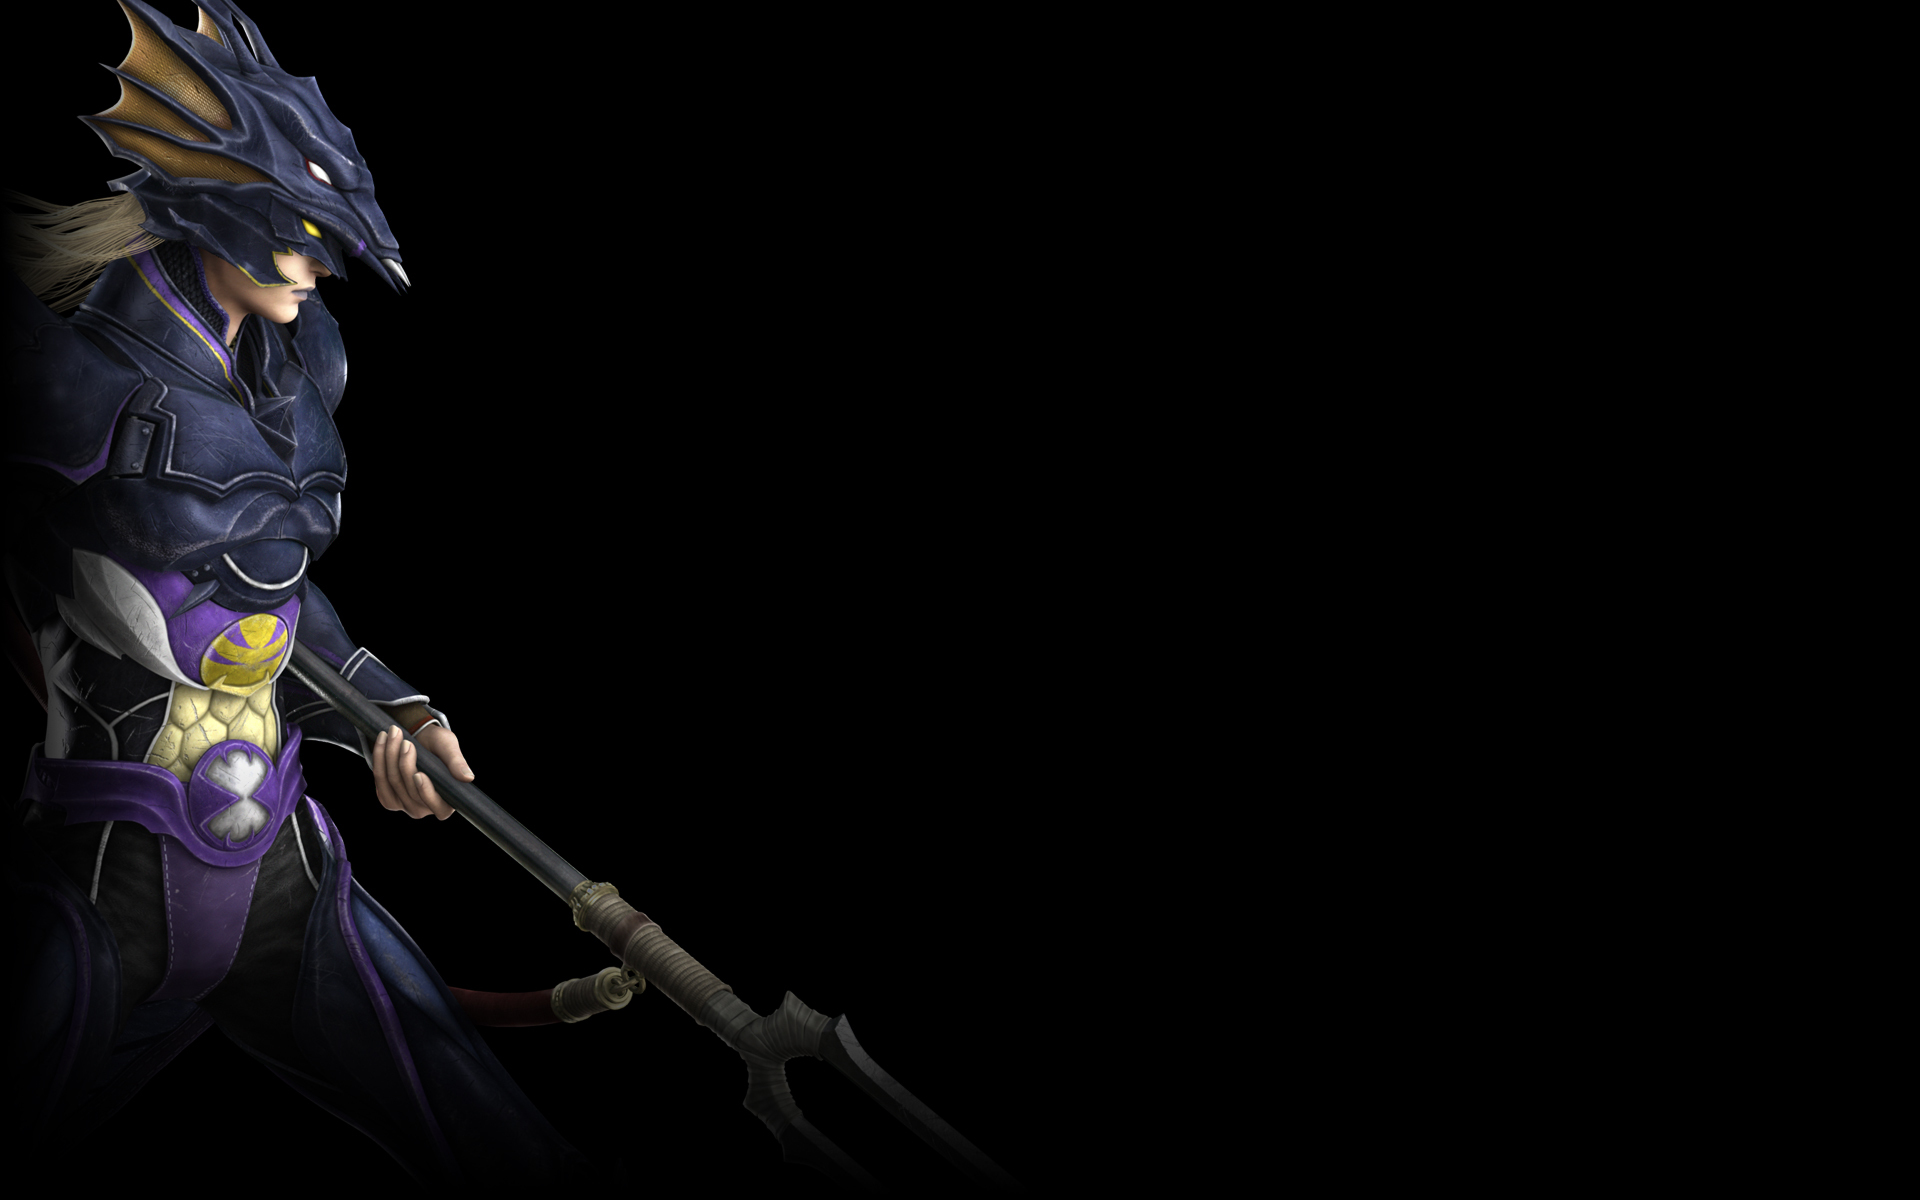 Final fantasy kain wallpaper - photo#11